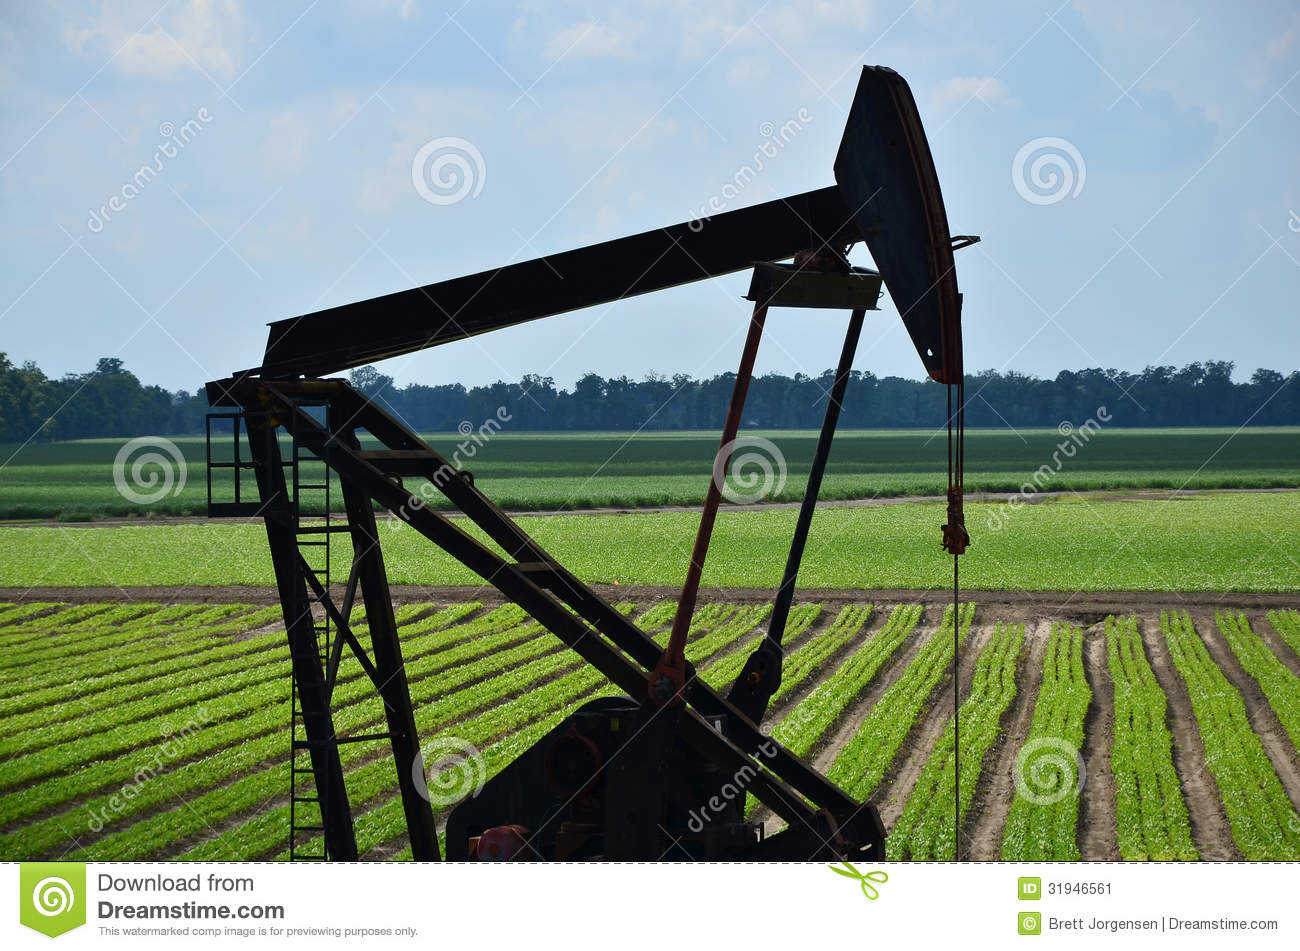 Oil Rig In Green Field Stock Image. Image Of Equipment